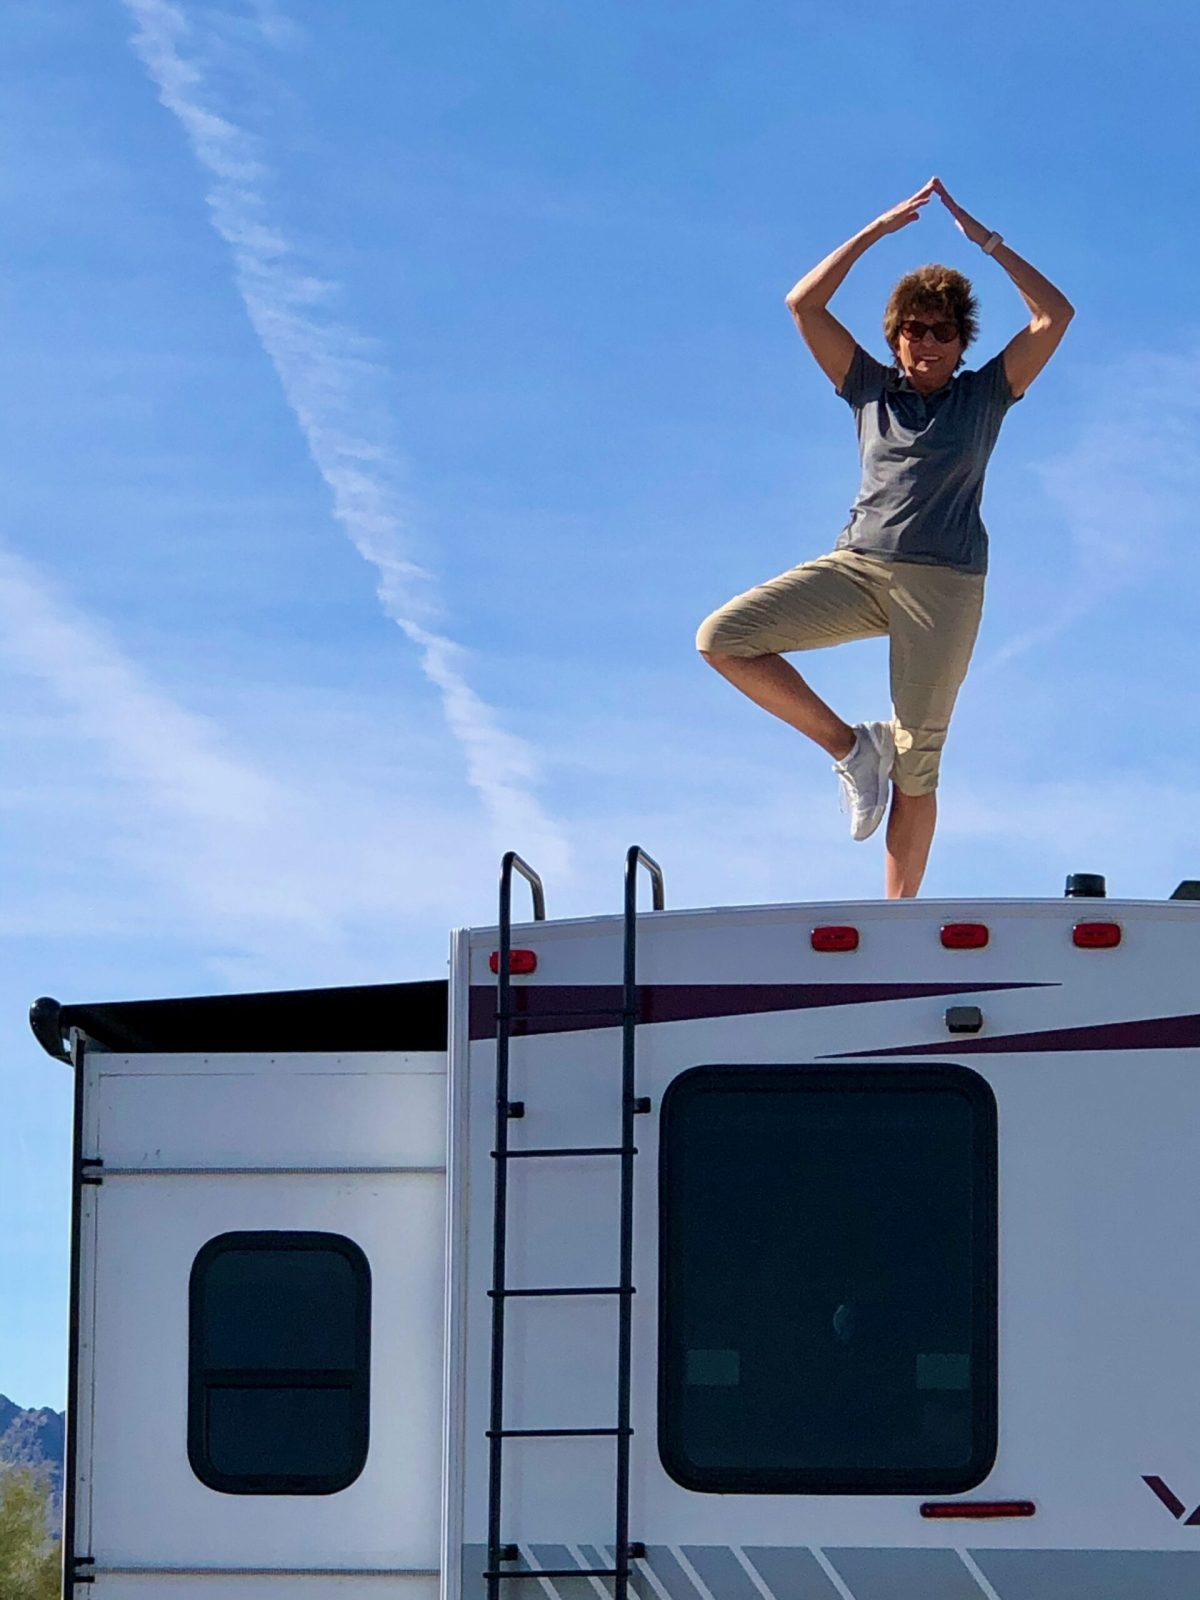 Getting close to nature and being self contained is a reason this s the year of the rv